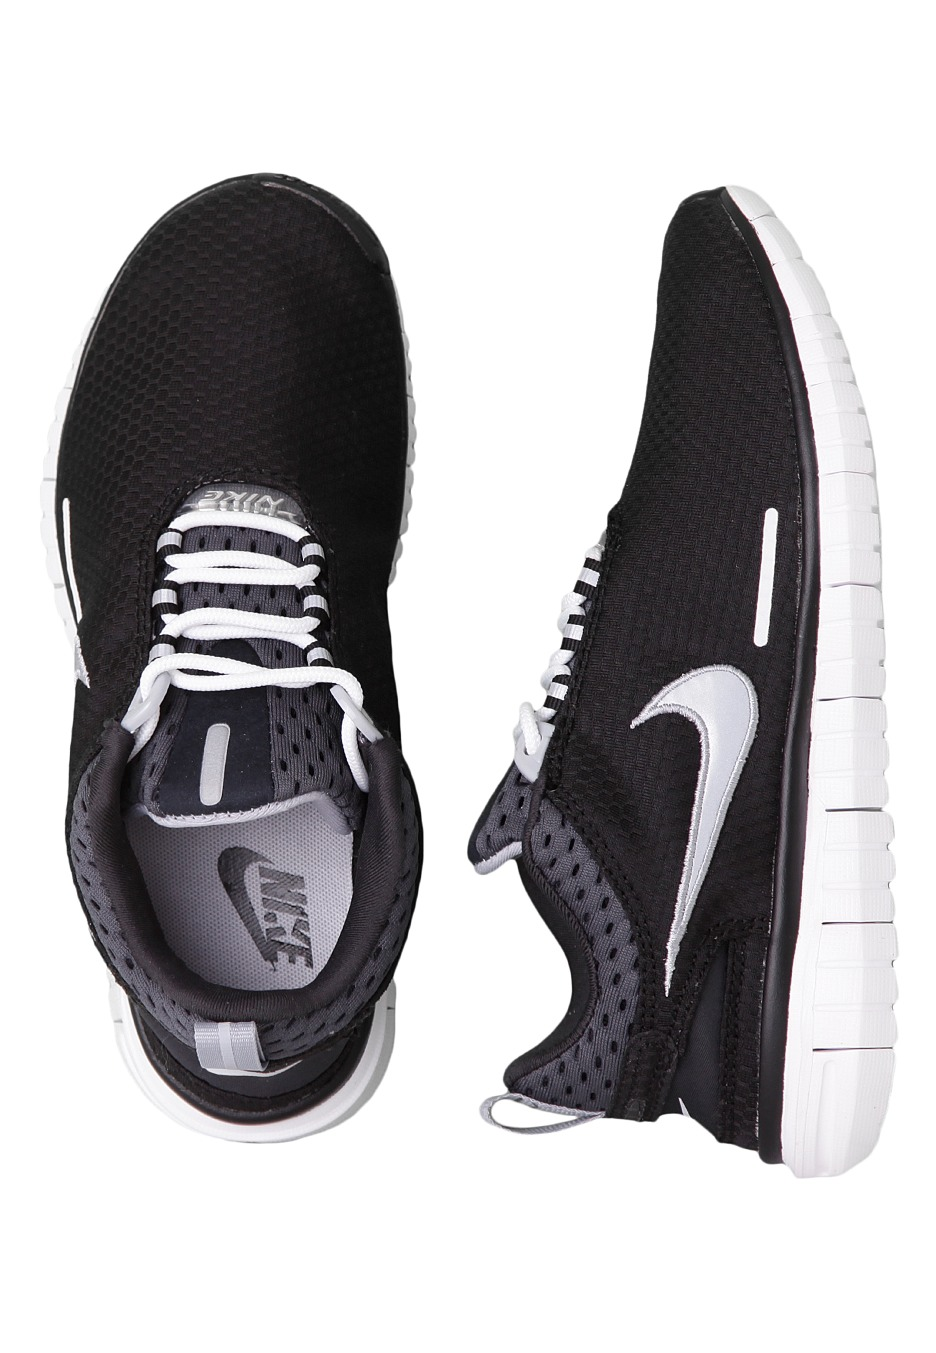 Cheap Nike Free Powerlines Cheap Nike Free Couple Cheap Nike Free Shoes